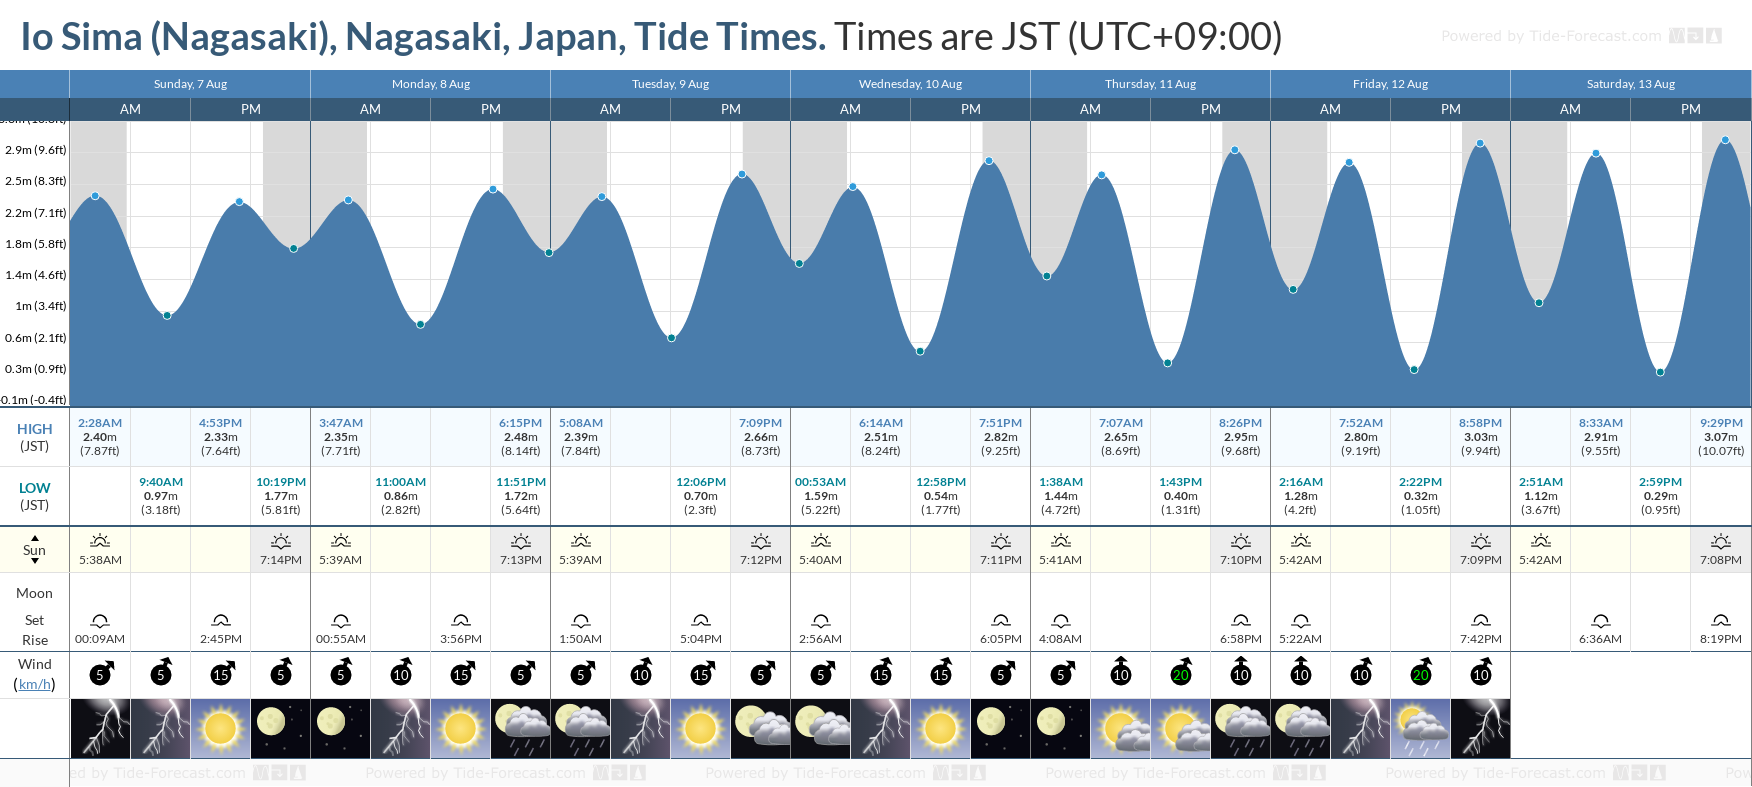 Io Sima (Nagasaki), Nagasaki, Japan Tide Chart including high and low tide tide times for the next 7 days